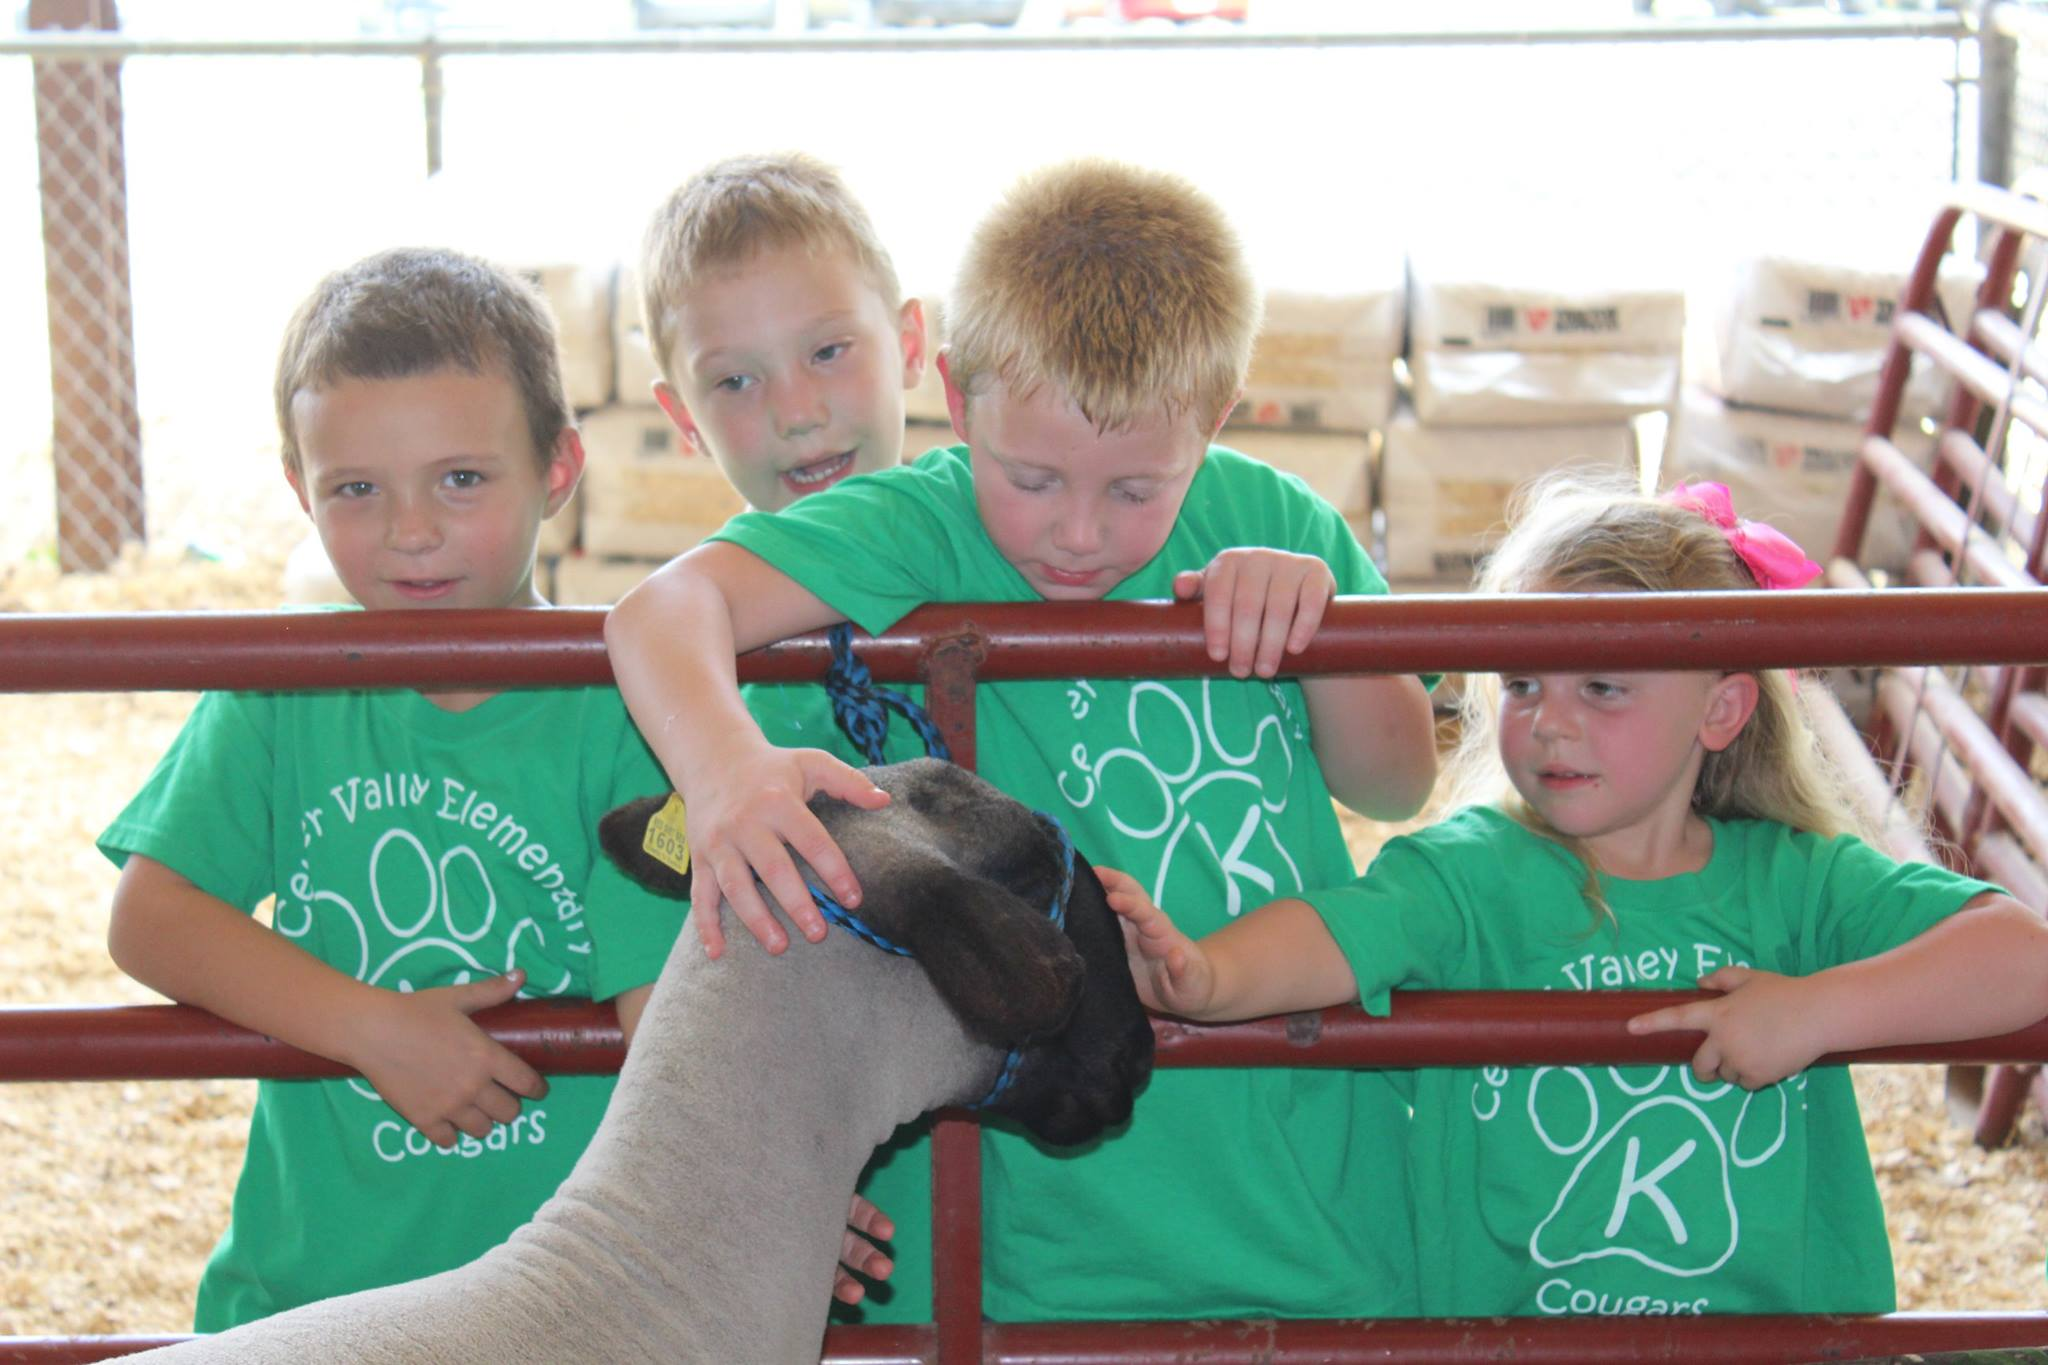 children petting sheep at fair